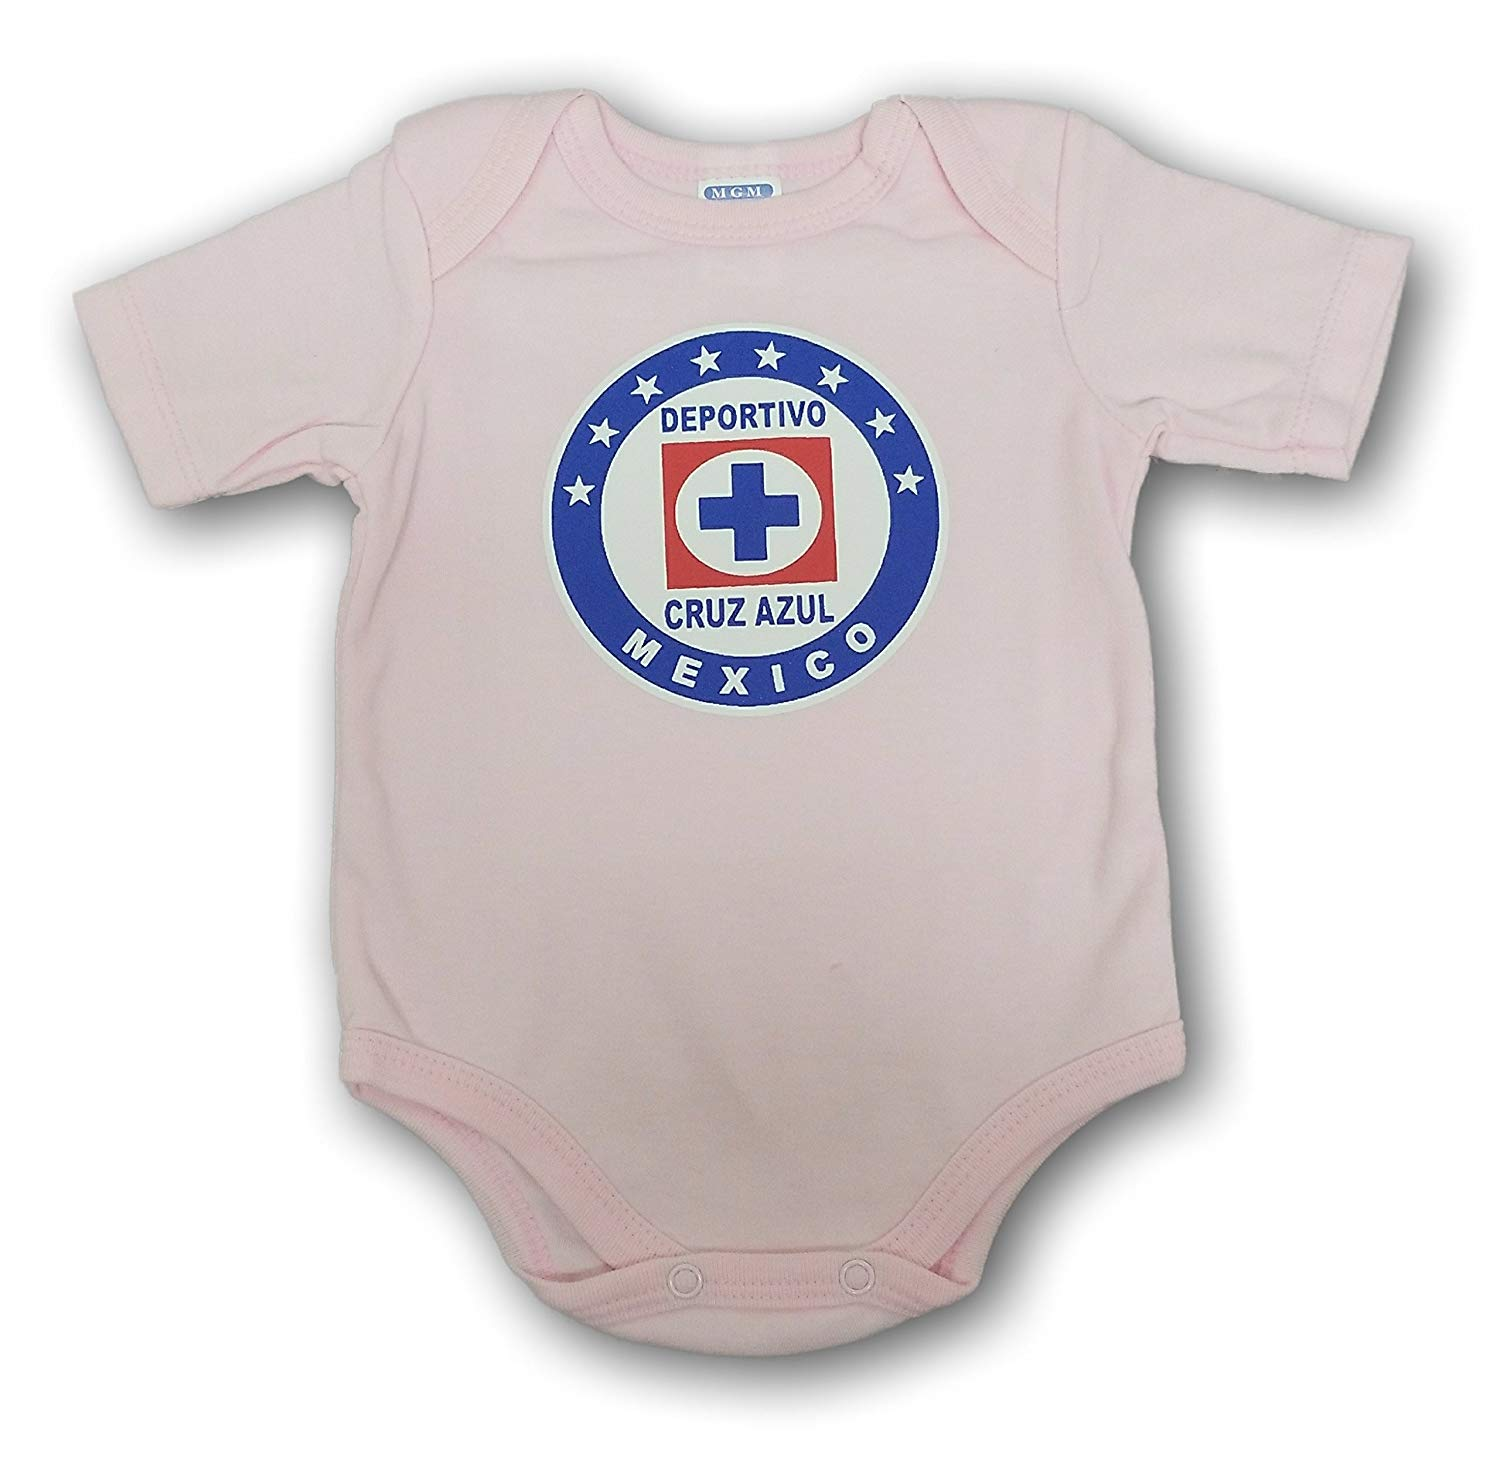 a78f1b489d9 Get Quotations · ESF Cruz Azul Baby Bodysuit Mameluco Jumpsuit Exclusive  Design